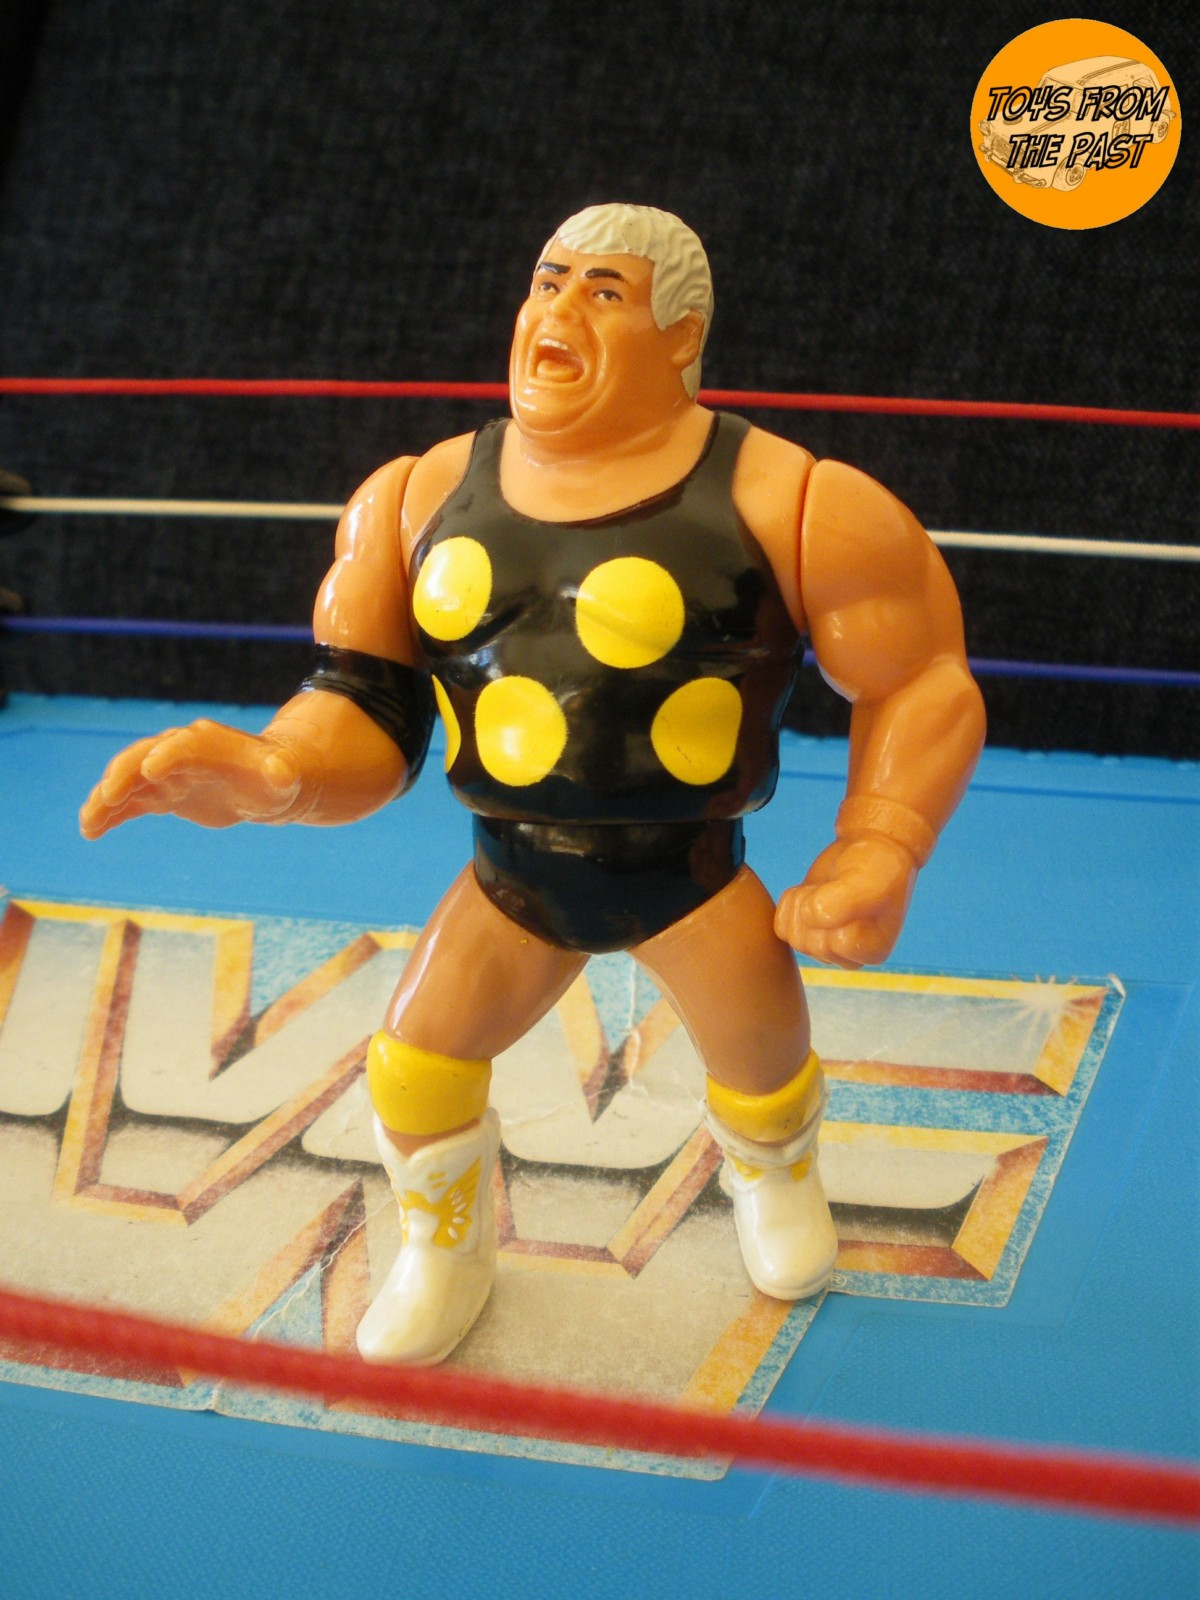 Toys From The Past : Toys from the past hasbro s wwf dusty rhodes